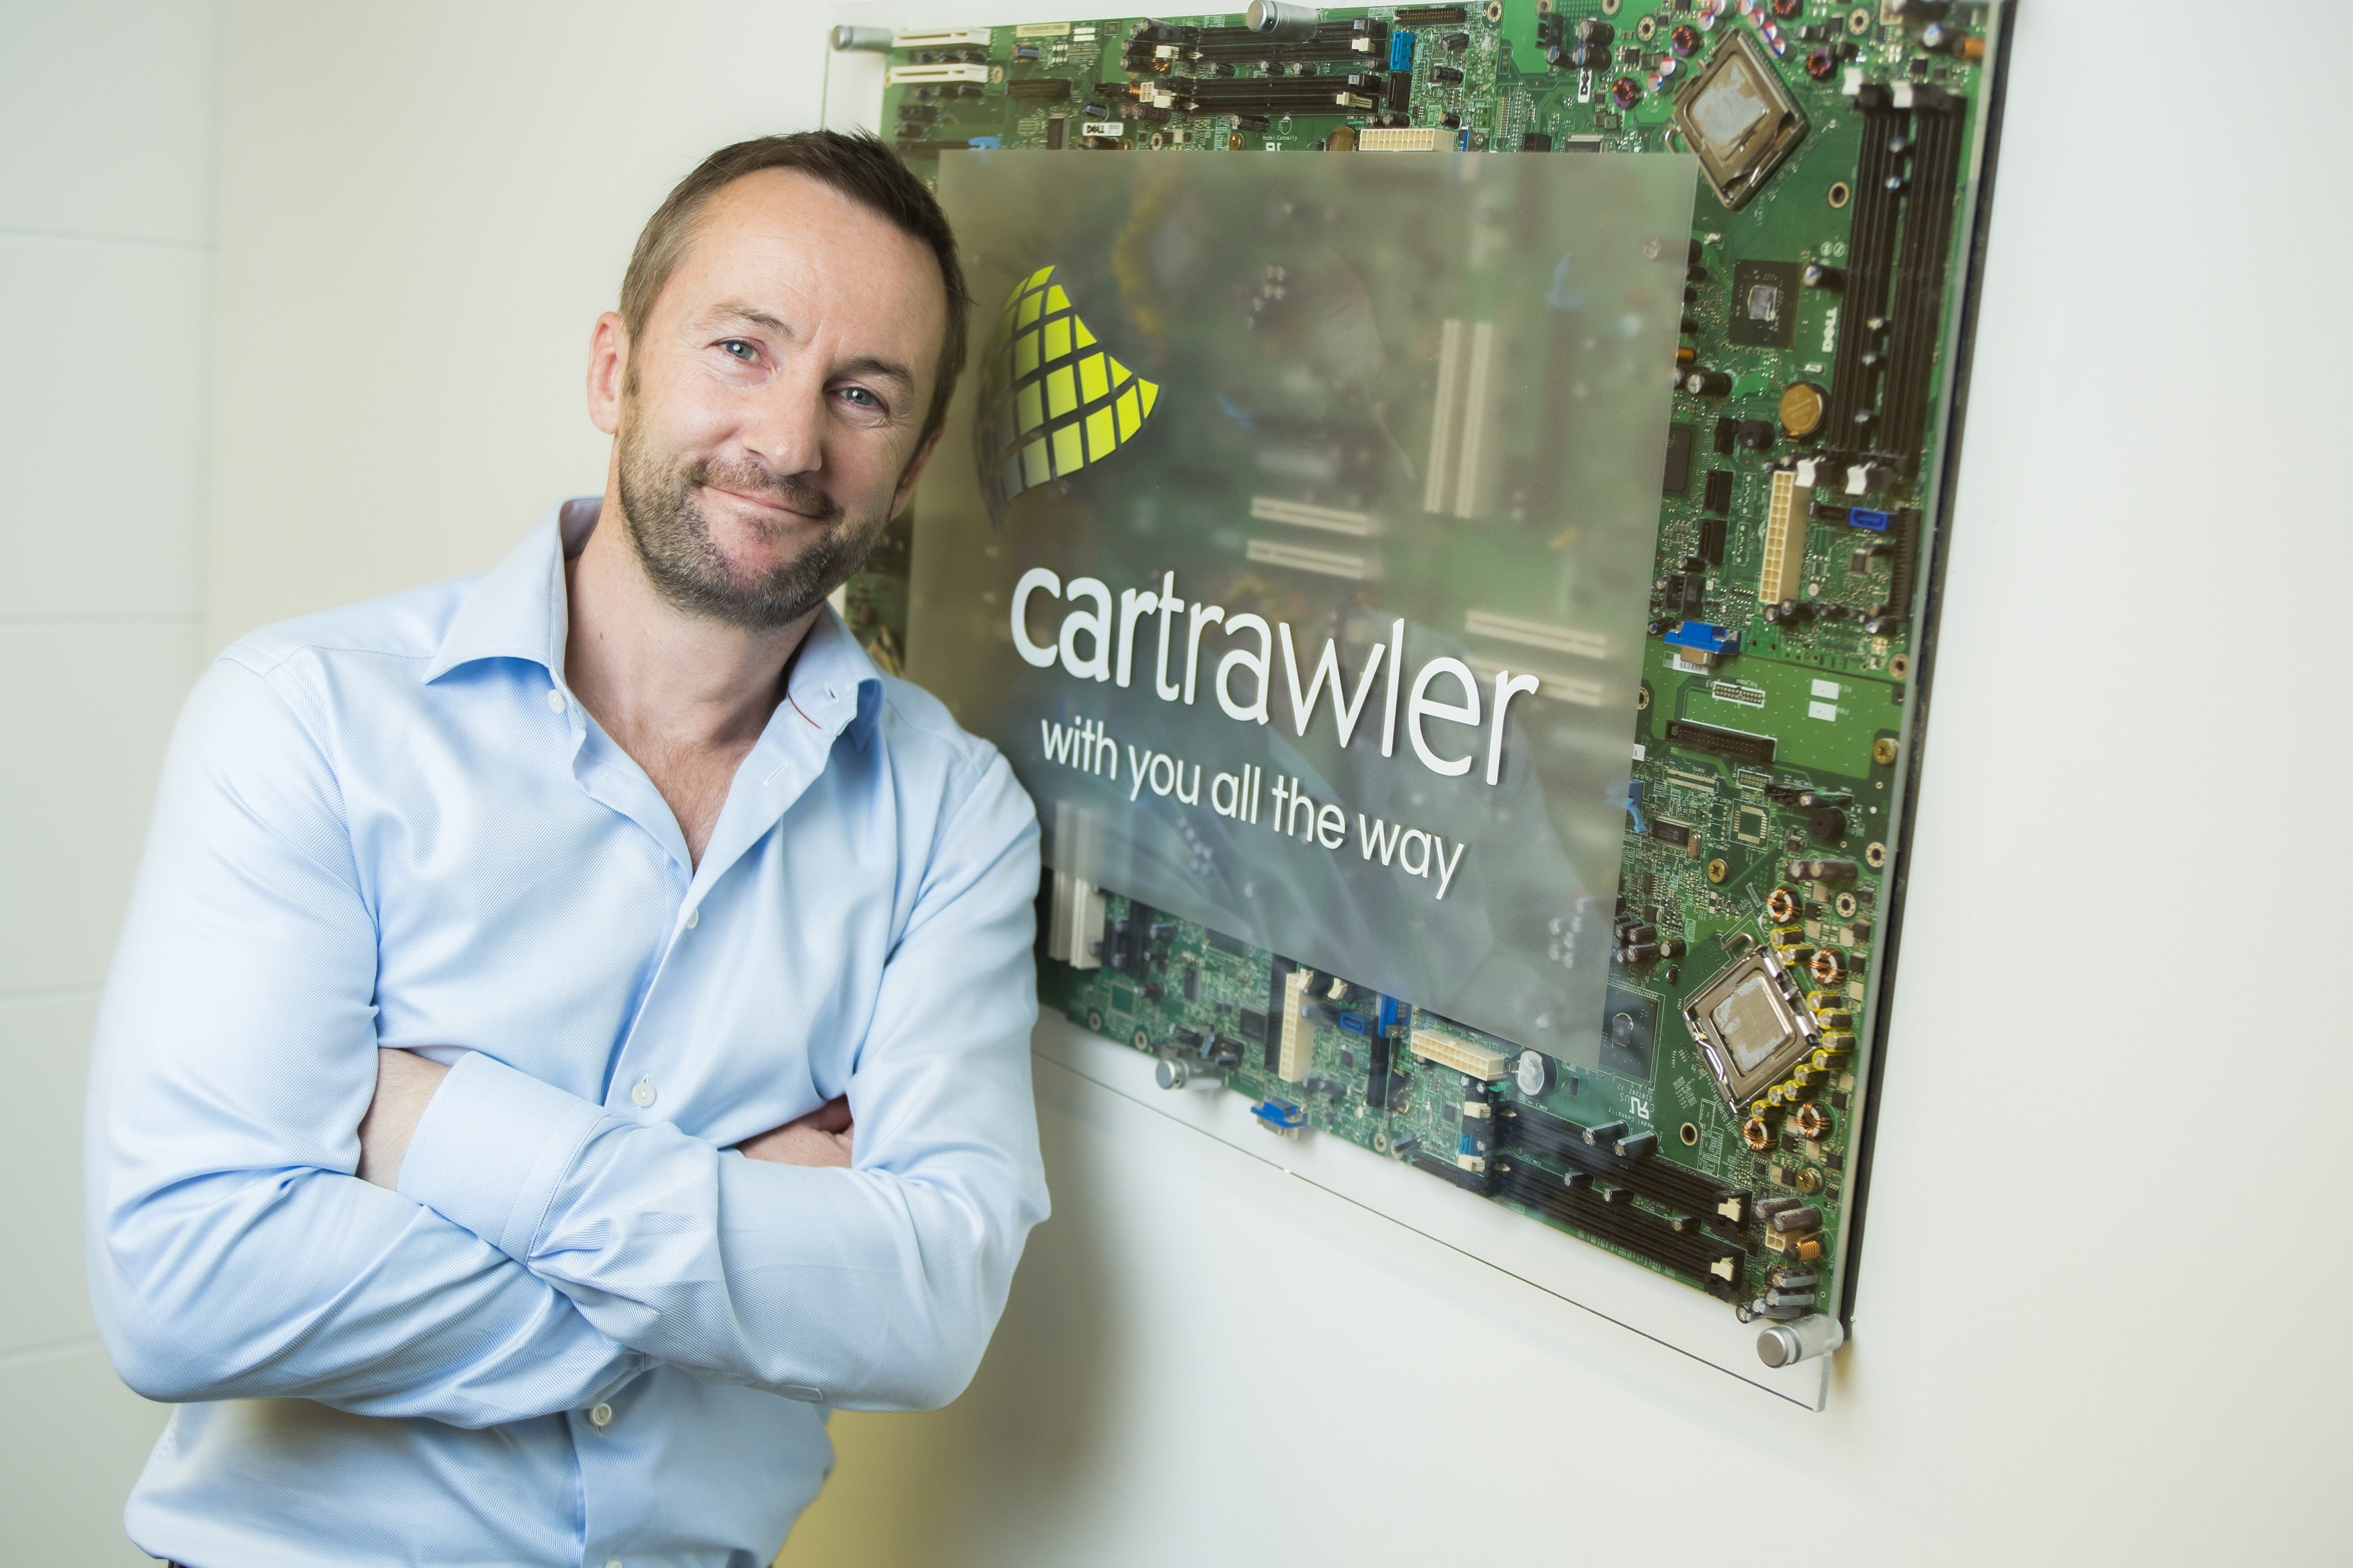 Technology that allows airline companies to offer a suite of ground transportation options to customers has made CarTrawler a world leader, while a focus on innovation helps it to constantly improve its product offering.